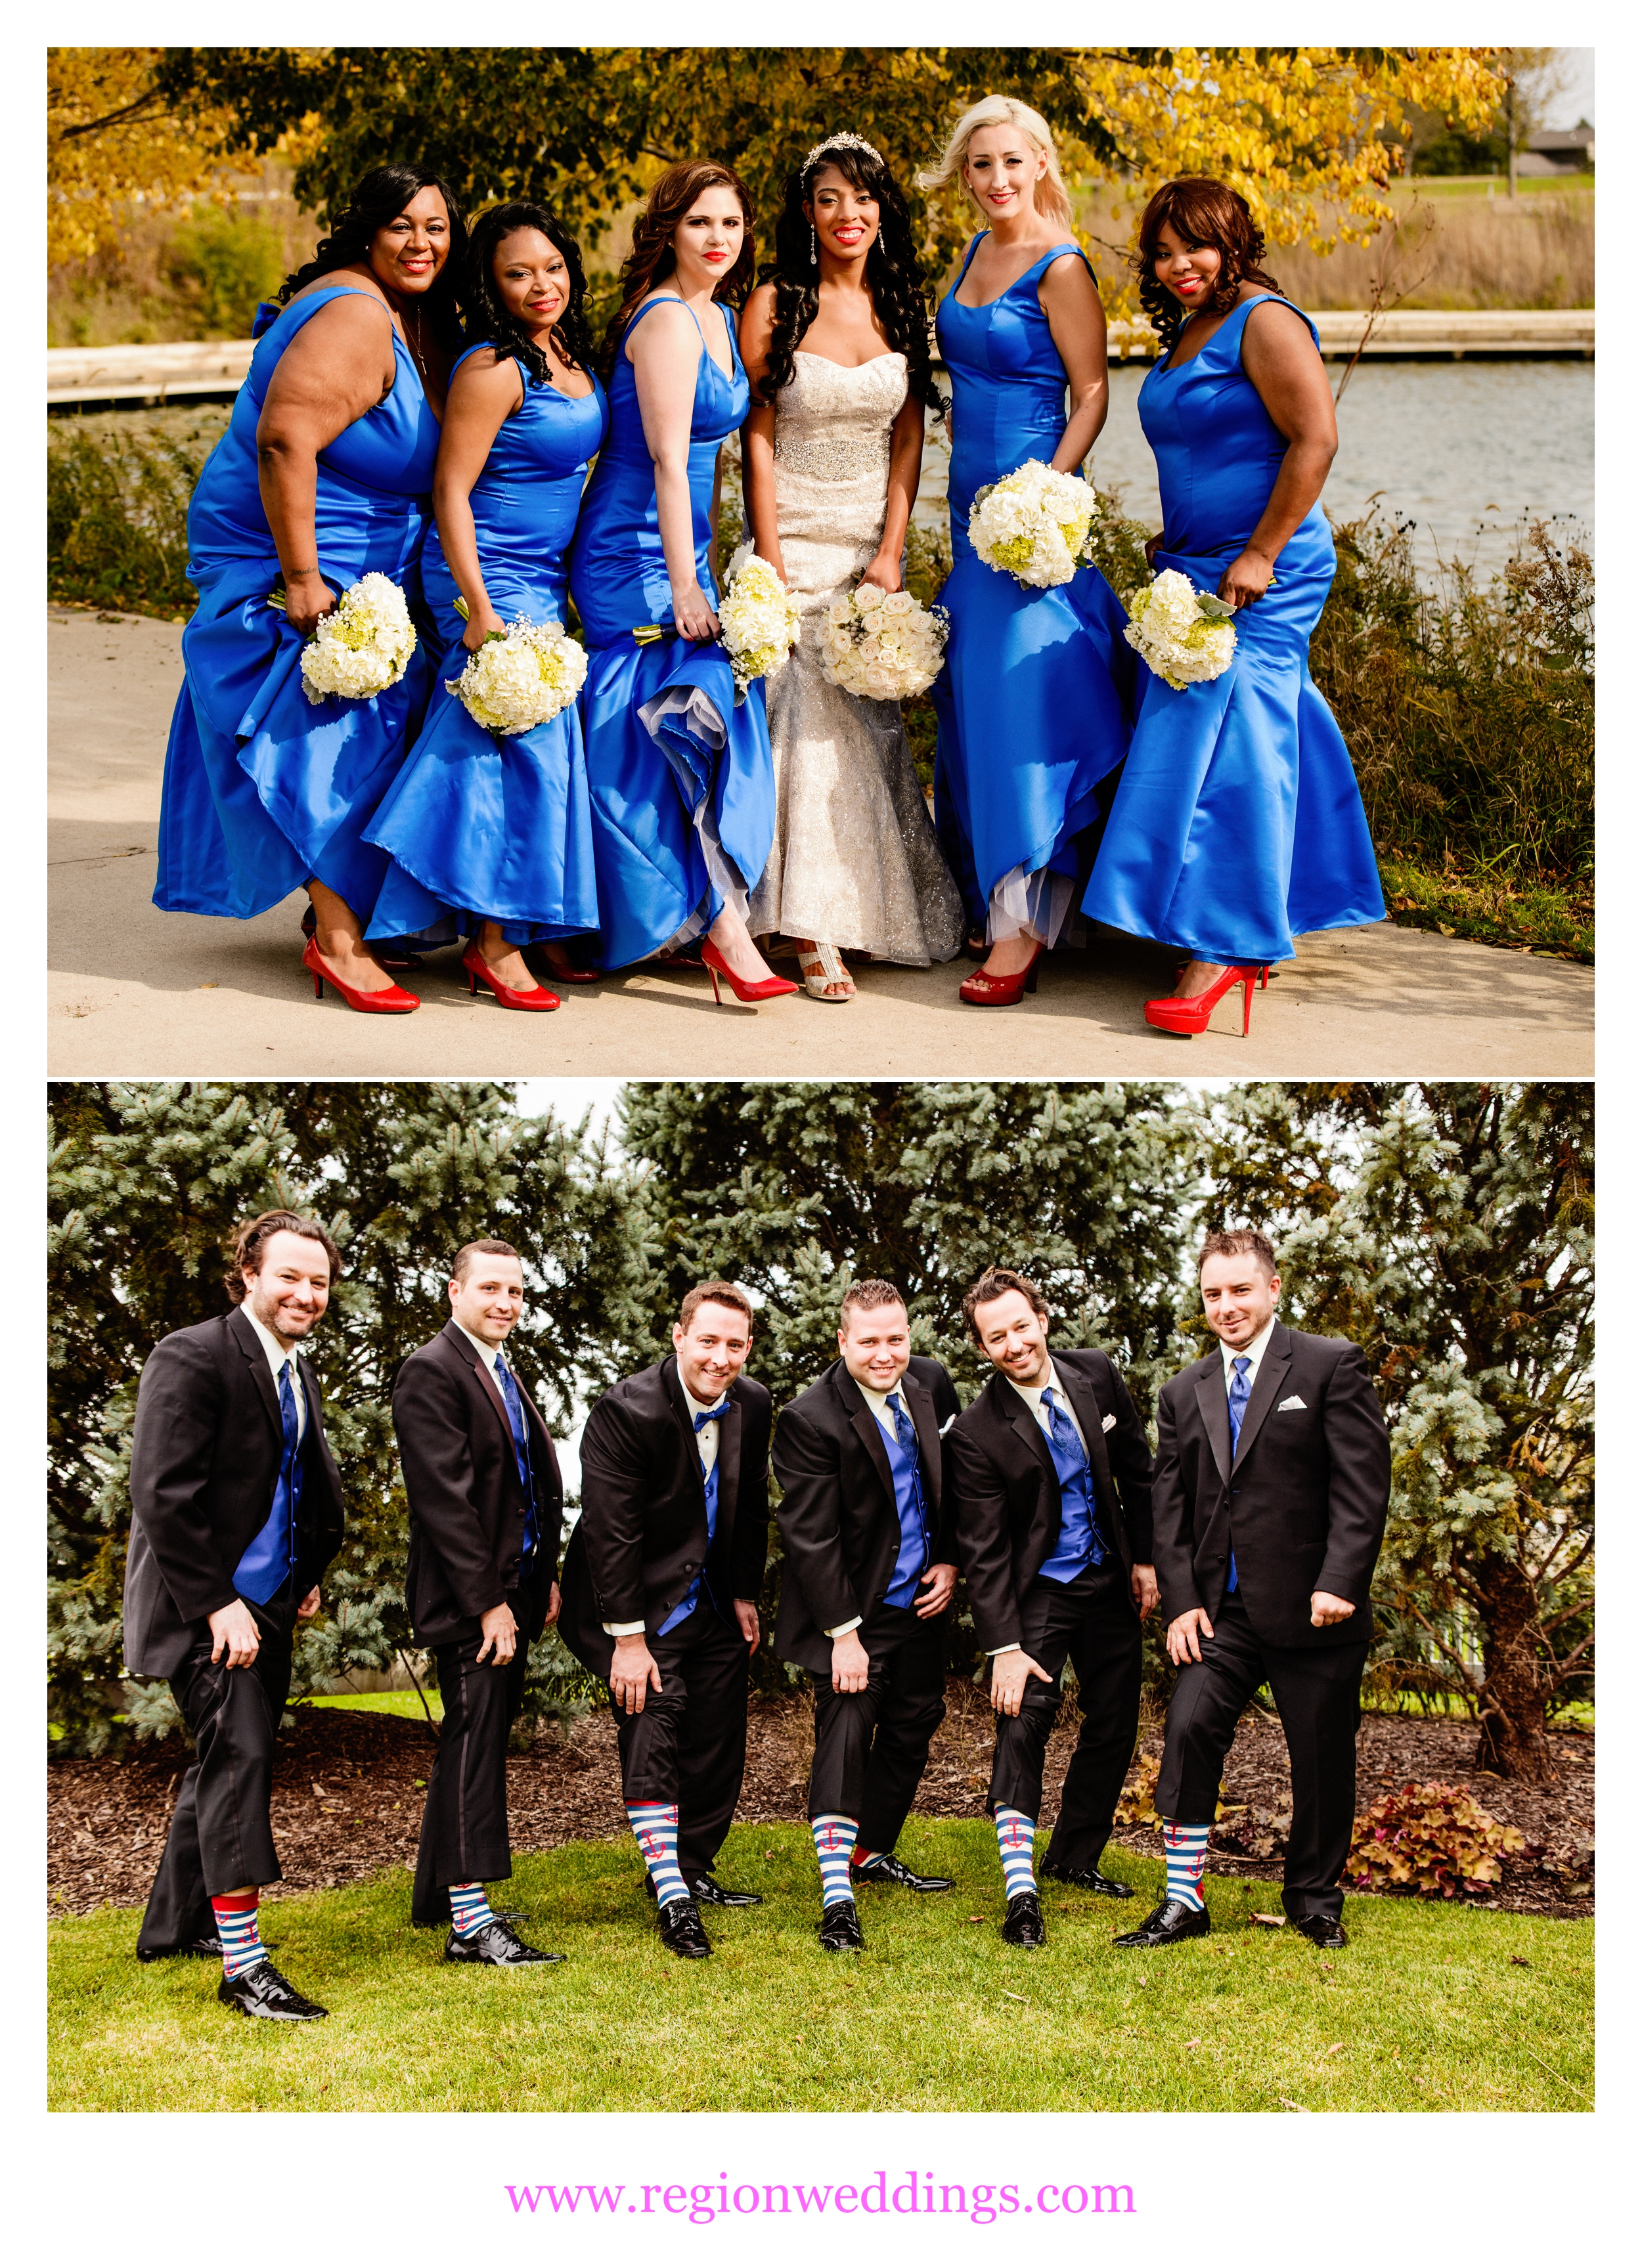 The wedding party shows off their socks and shoes.